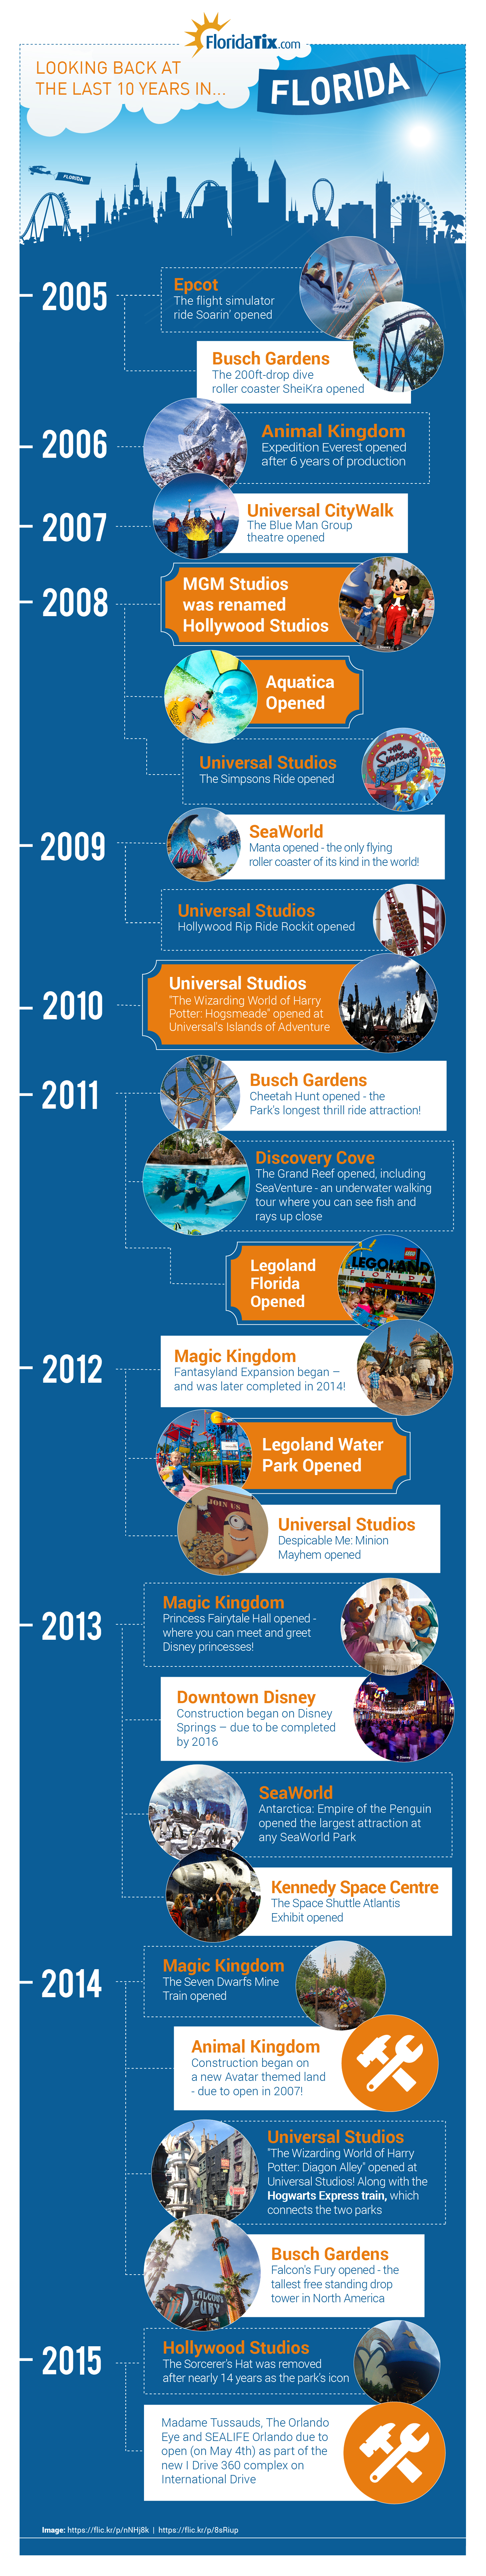 10 years of Florida Timeline - Infographic